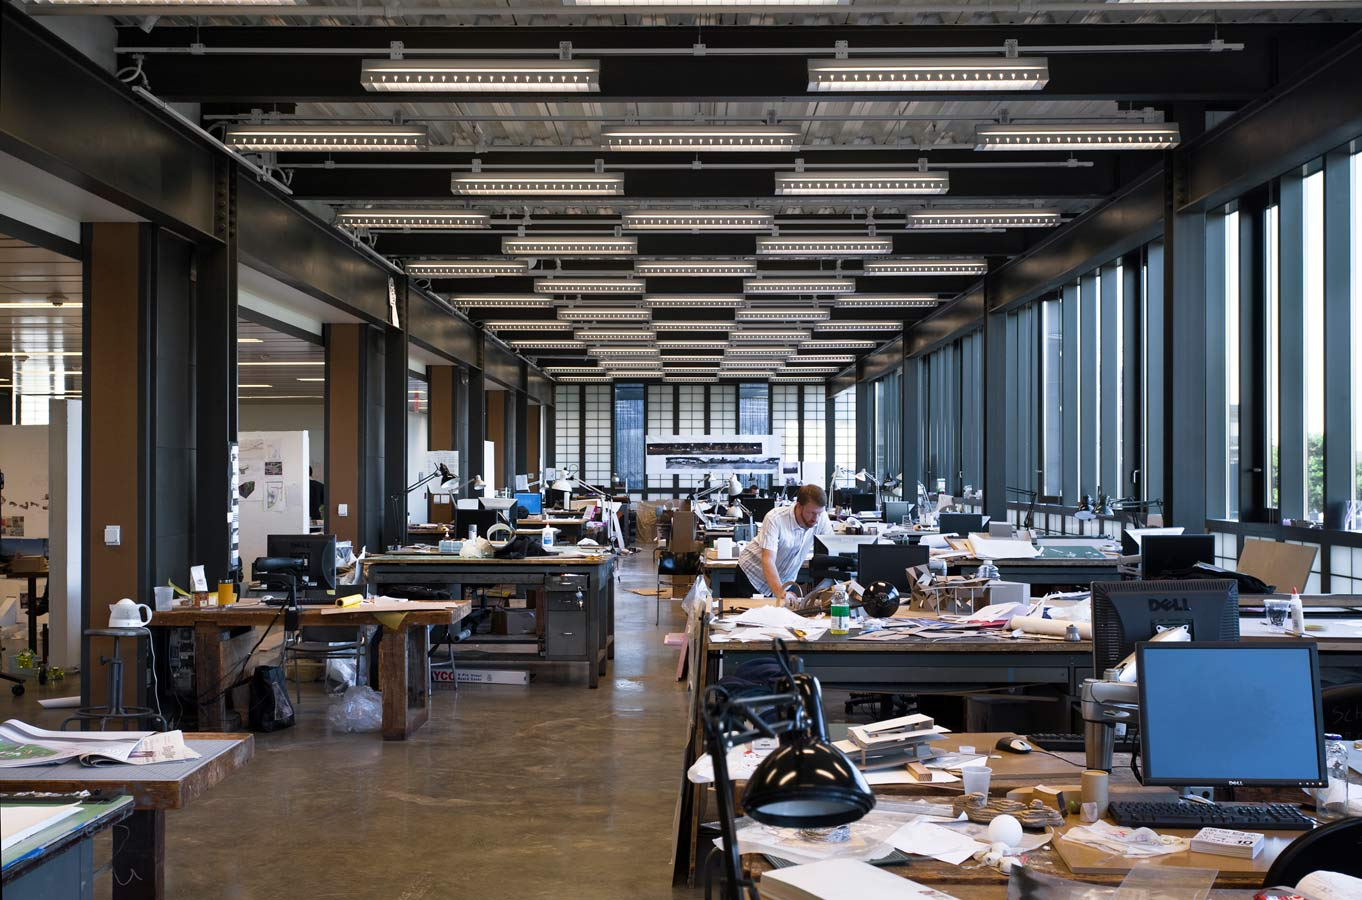 <p>A very low-velocity displacement air system at the center of the floor plates efficiently ventilates the interior, protecting air quality within workshops and studios, while exposed radiation heats the perimeter. This is the first such system to be installed on the Yale campus. <br><small>© Peter Aaron/OTTO</small></p>